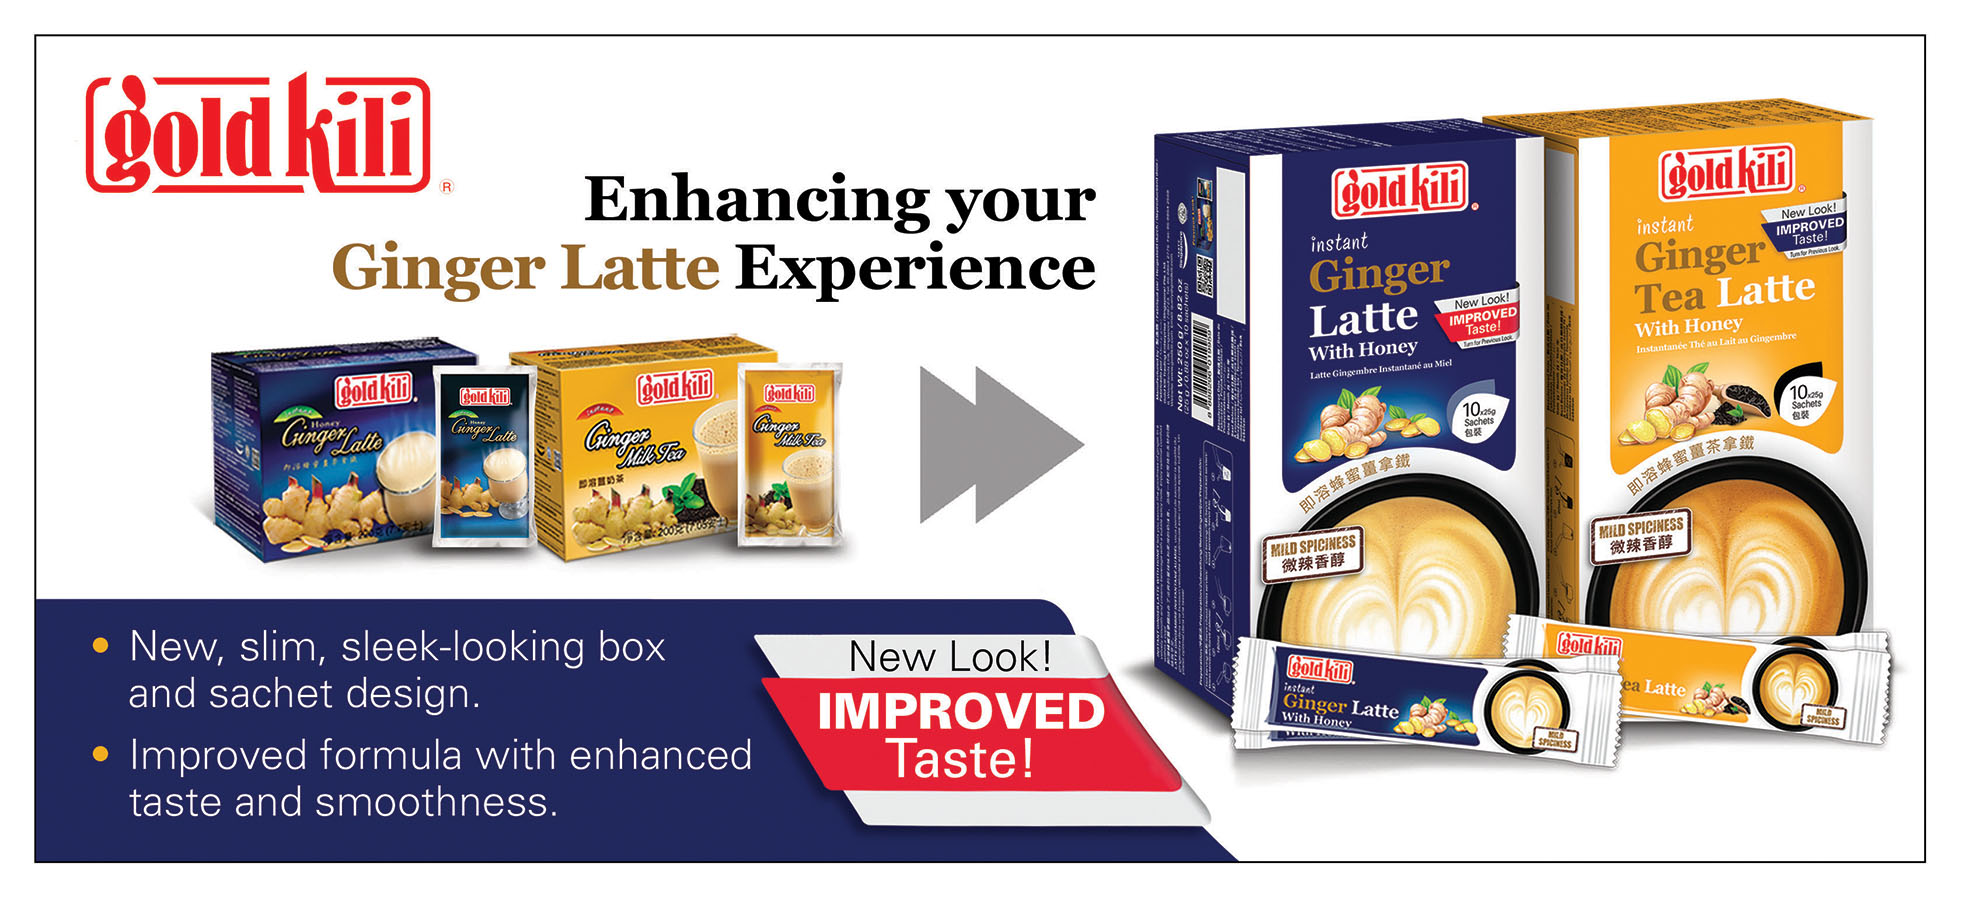 Gold Kili Ginger Latte Series with New Look and Improved Taste